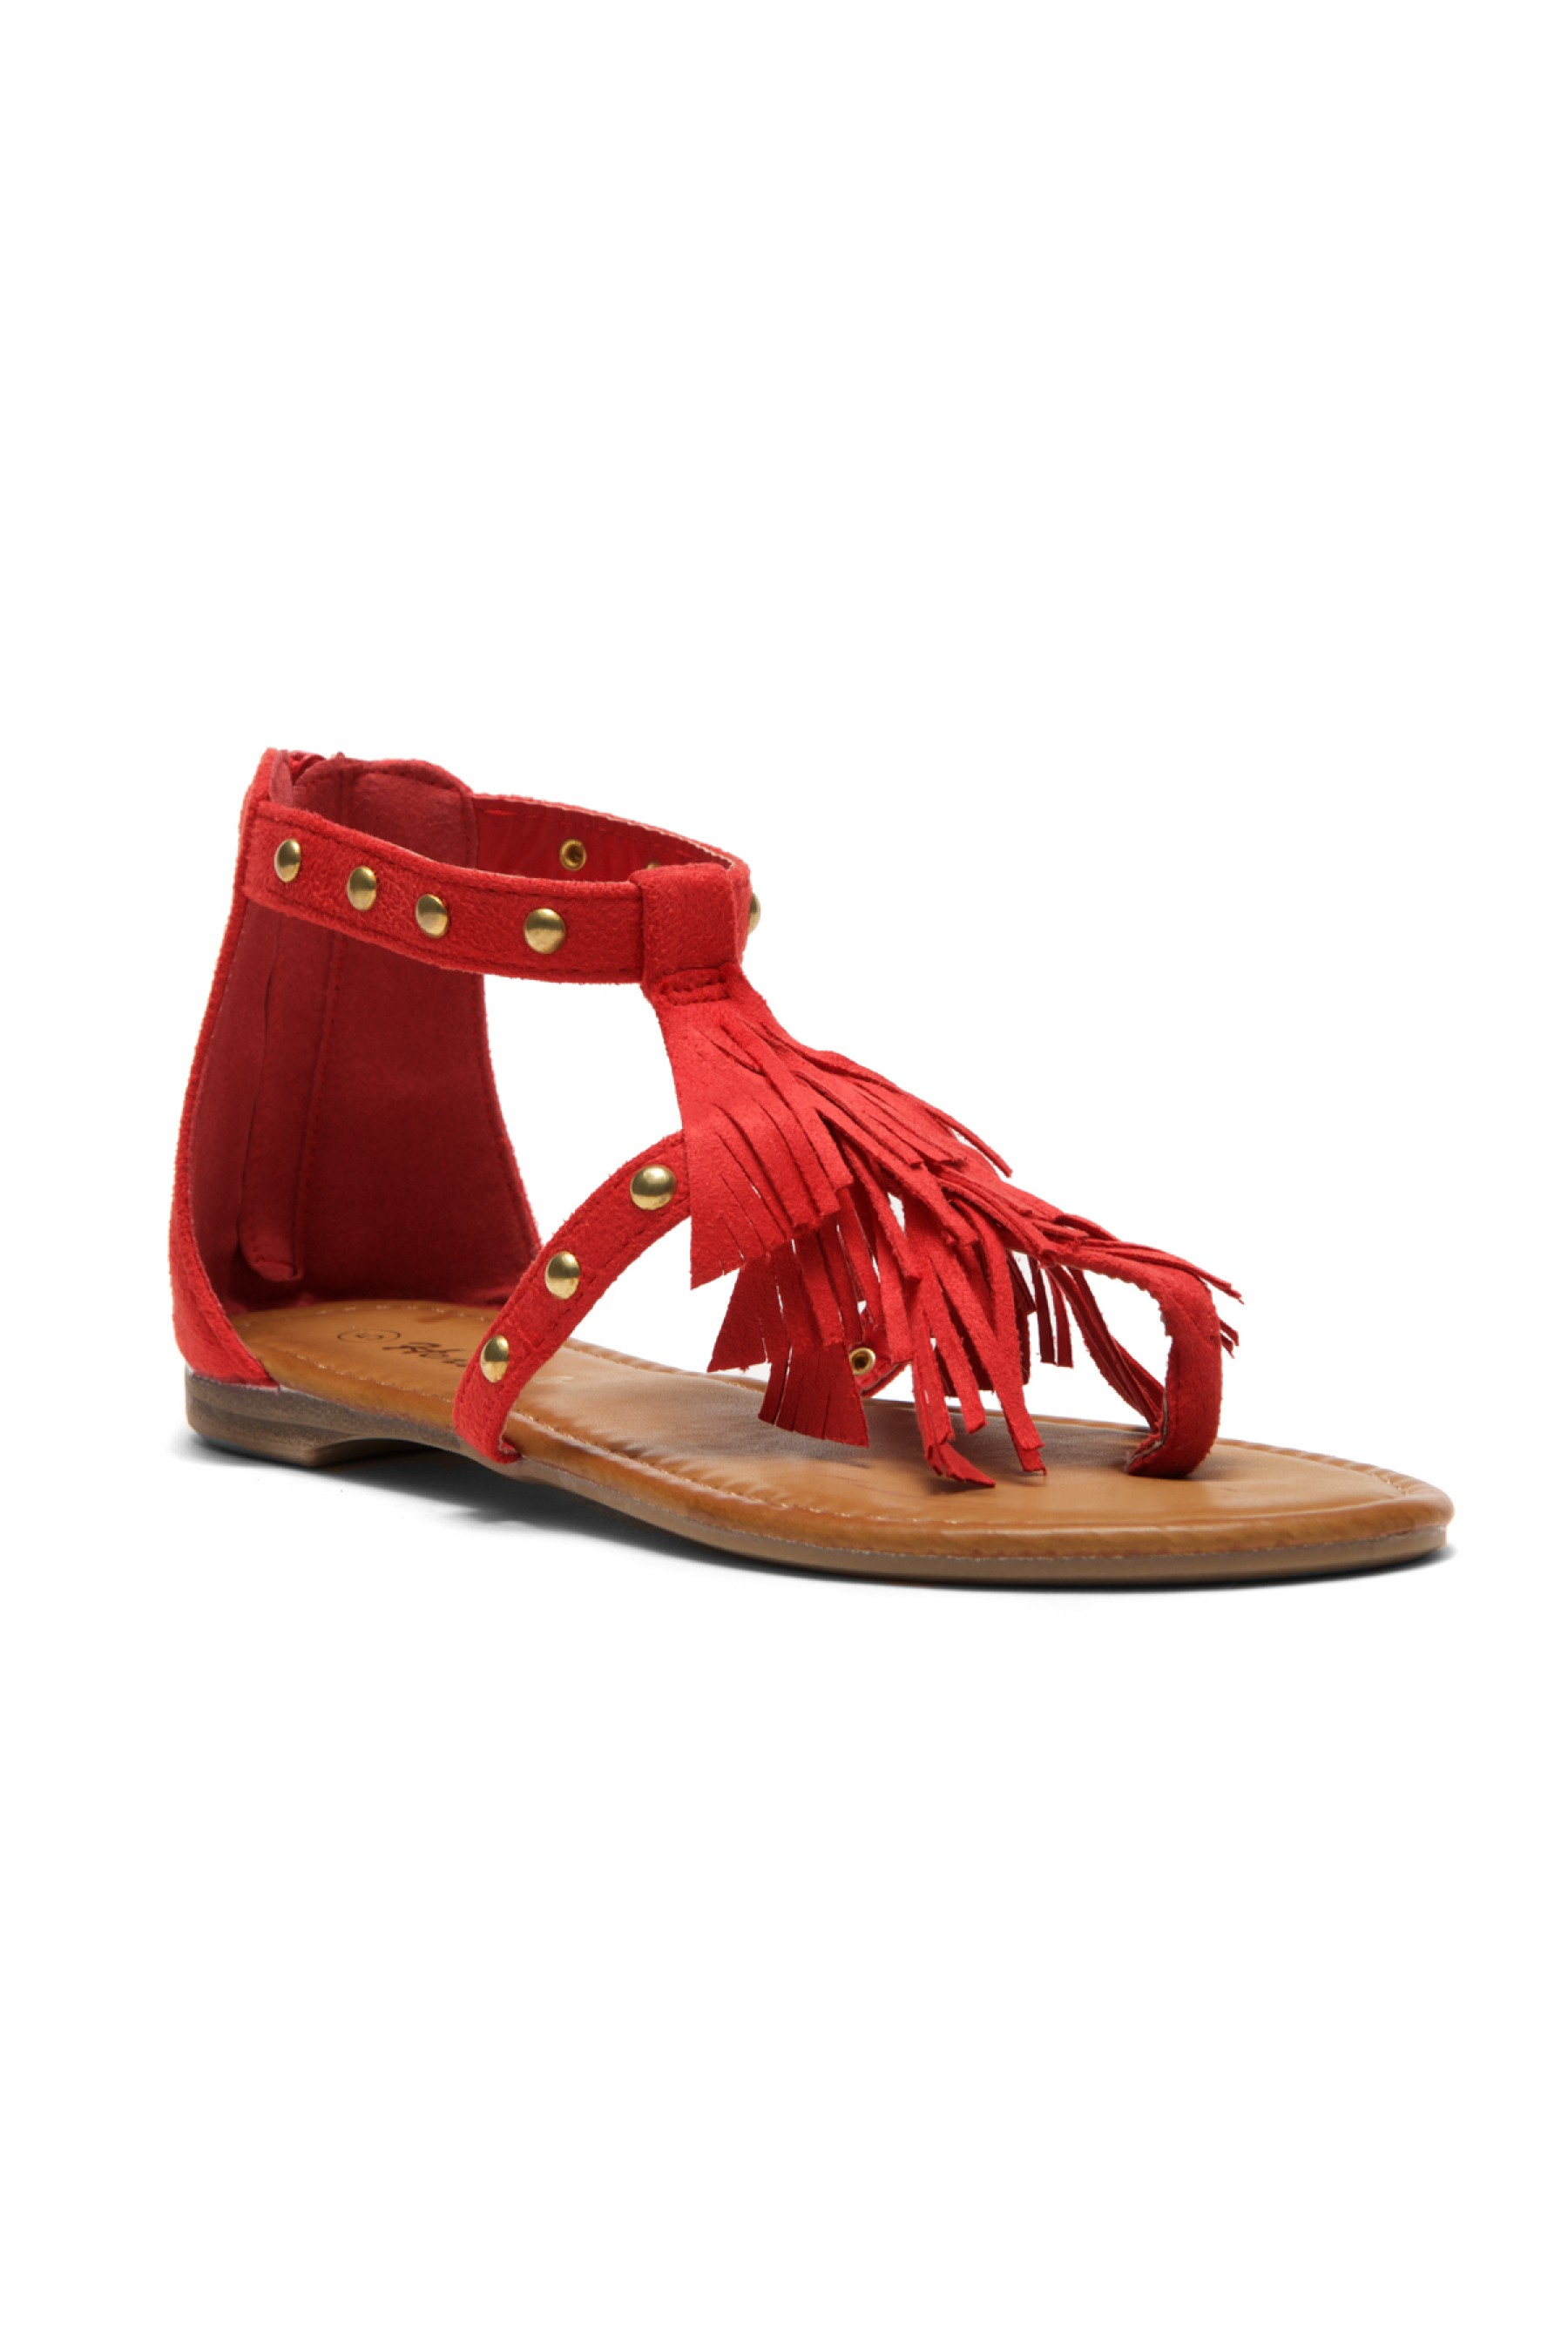 Women's Fuchsia Sammson Studded T-Strap Sandal with Soft Fringed Straps